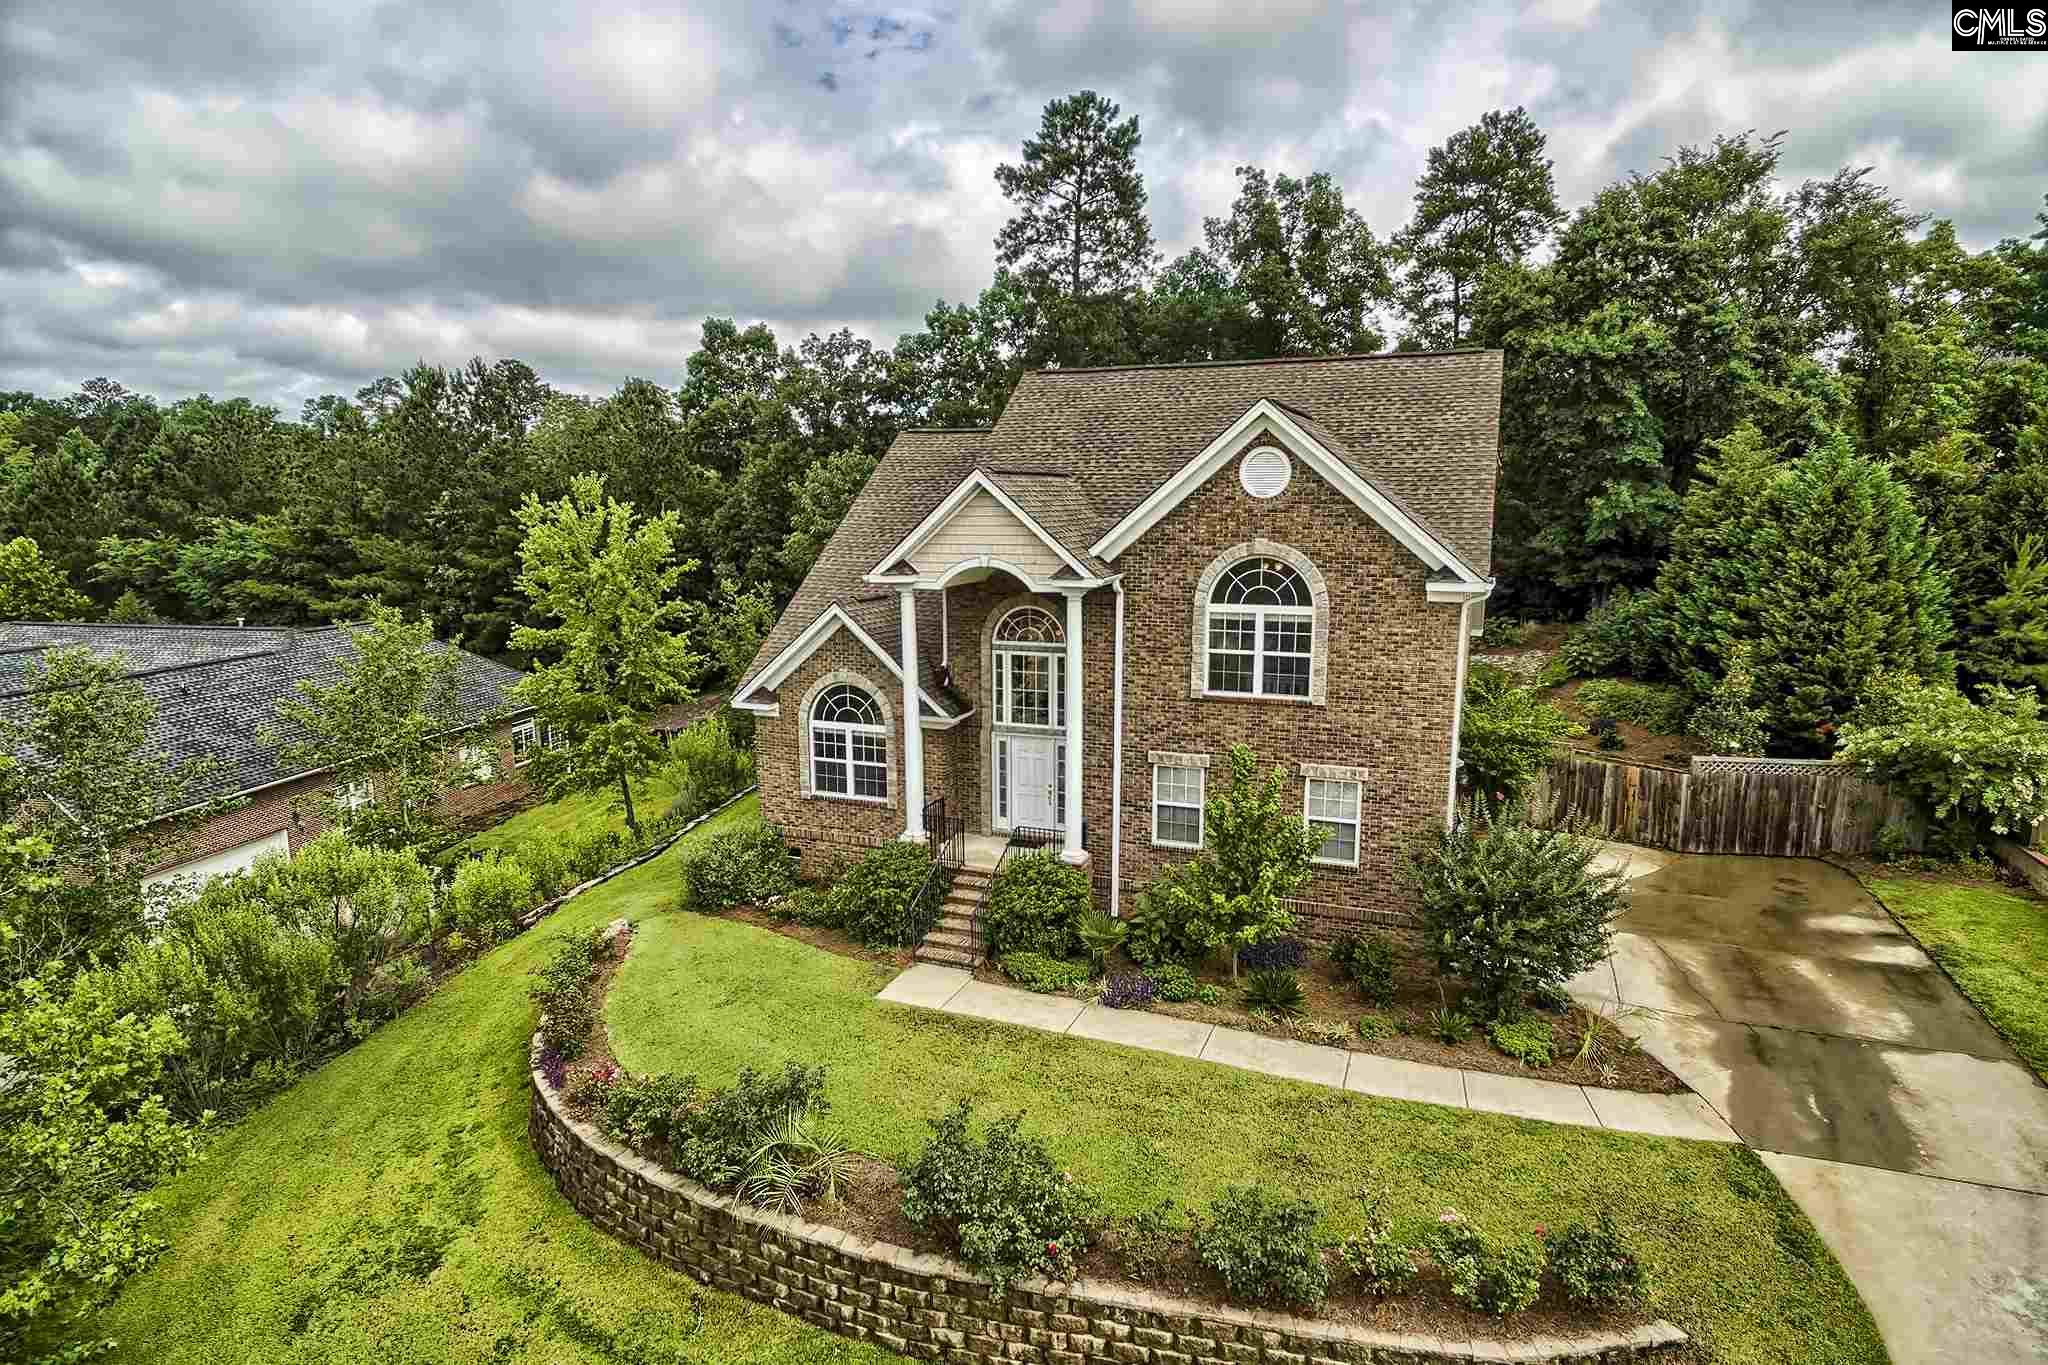 128 Creek Knoll Columbia, SC 29212-9999